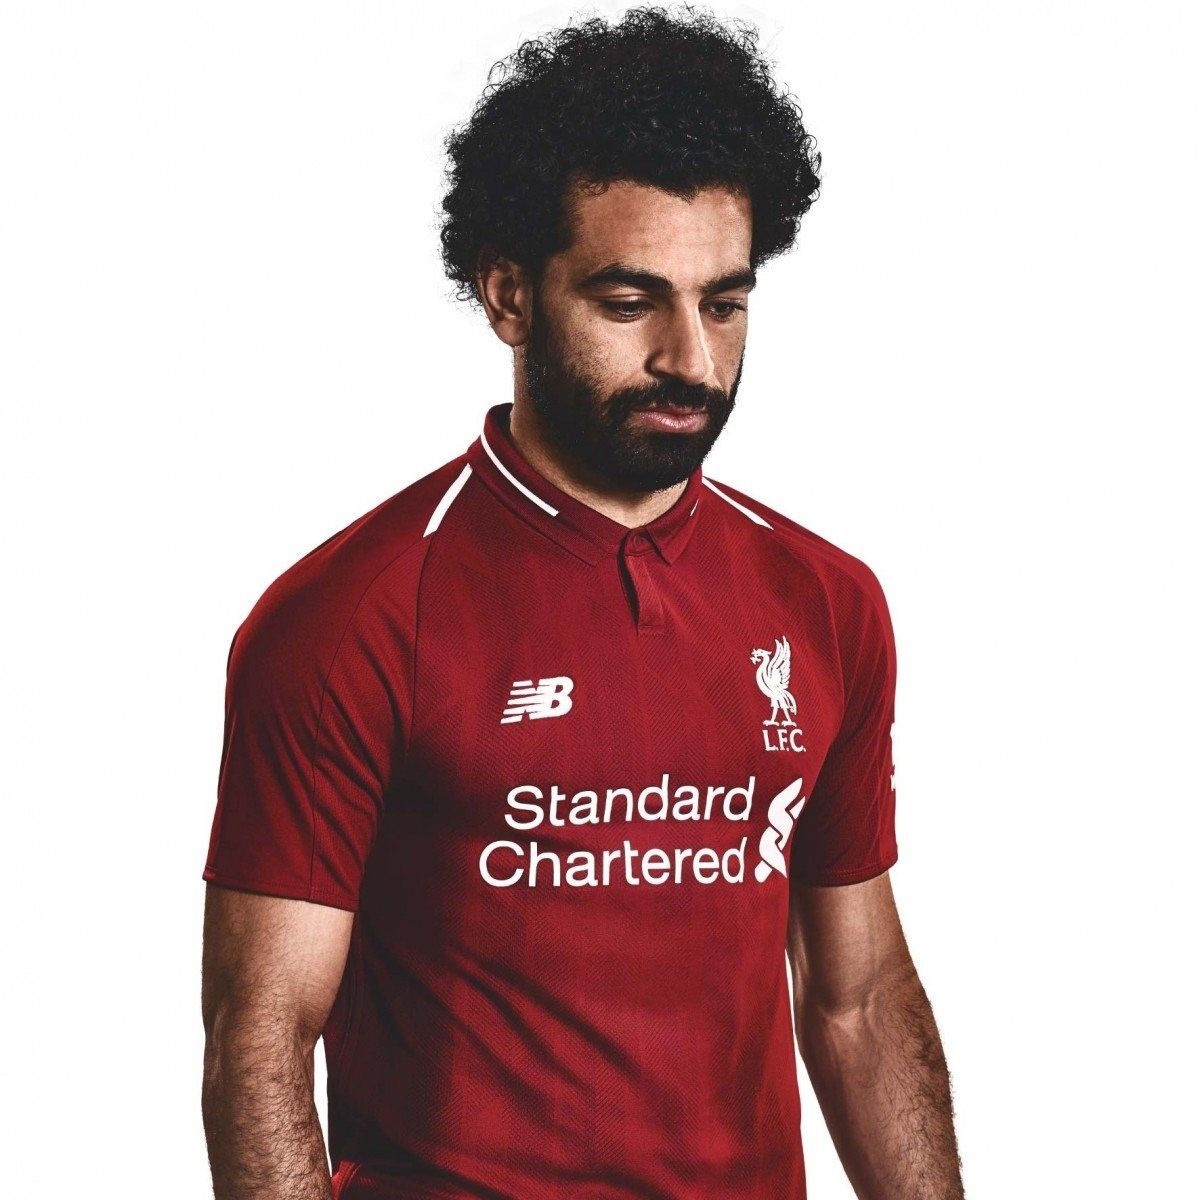 Mohamed Salah Com A Camisa 1 Do Liverpool 2018 2019 Premier League Camisa Do Timao Camisa